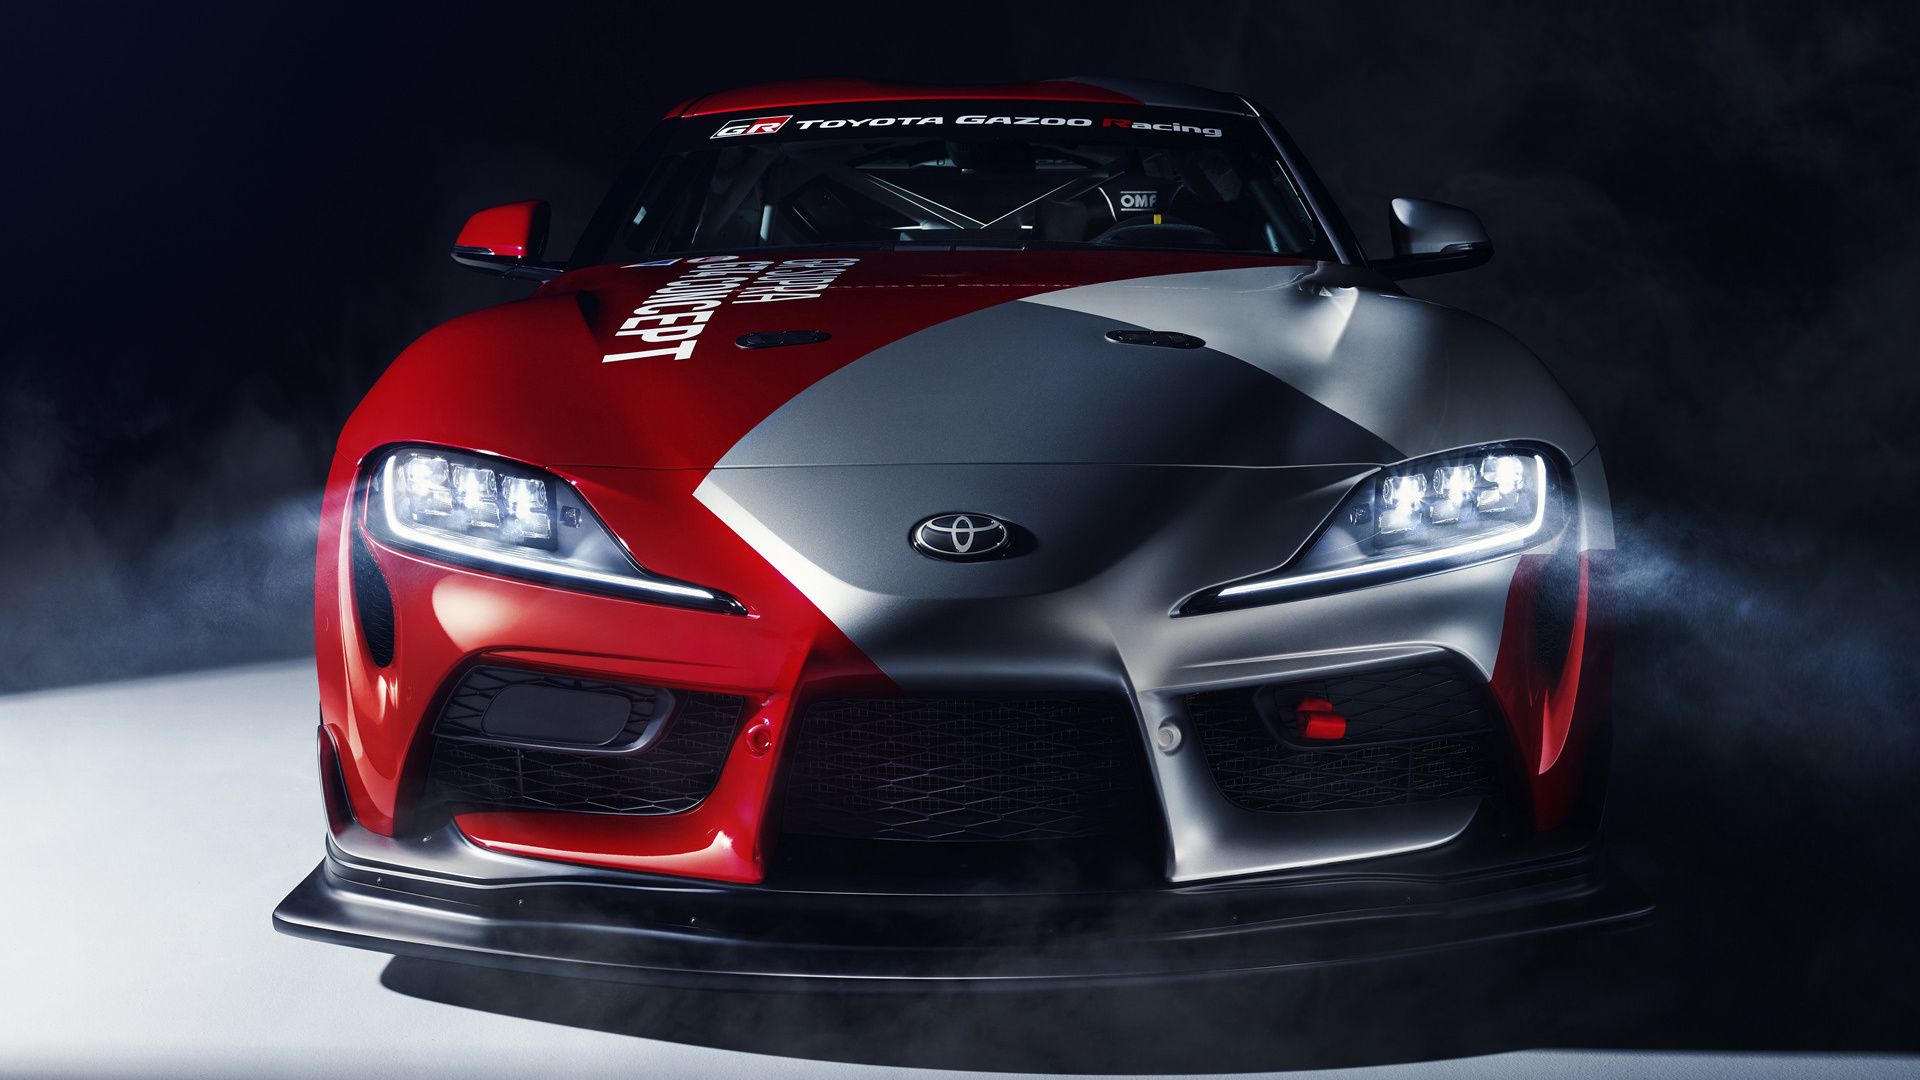 2019 Toyota GR Supra GT4 Concept   Wallpapers and HD Images Car 1920x1080